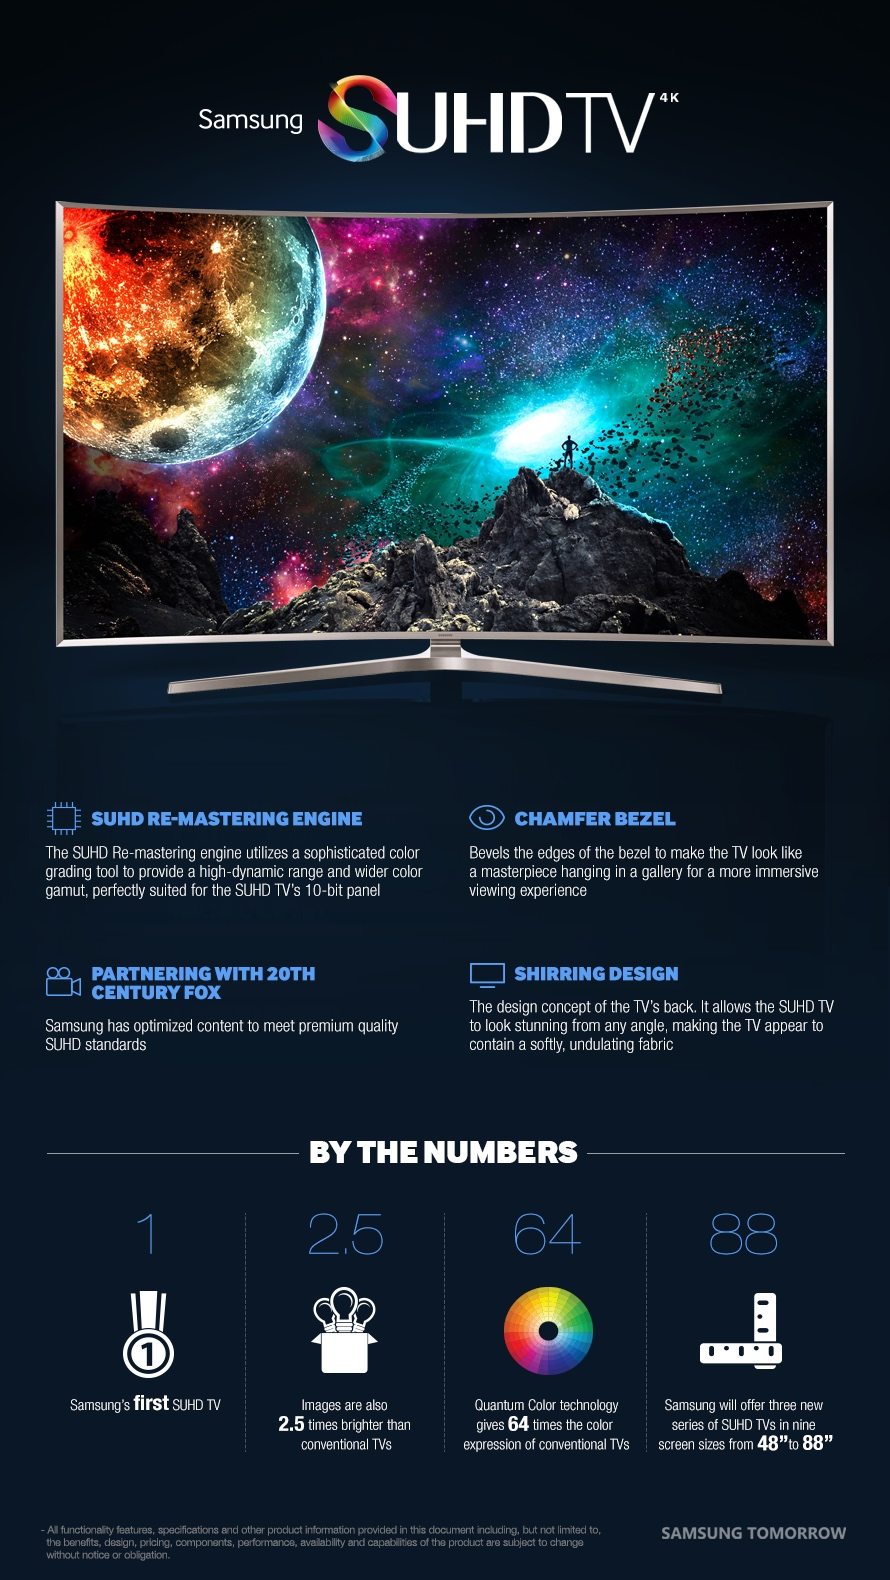 Samsungs-new-SUHD-TV-in-one-image